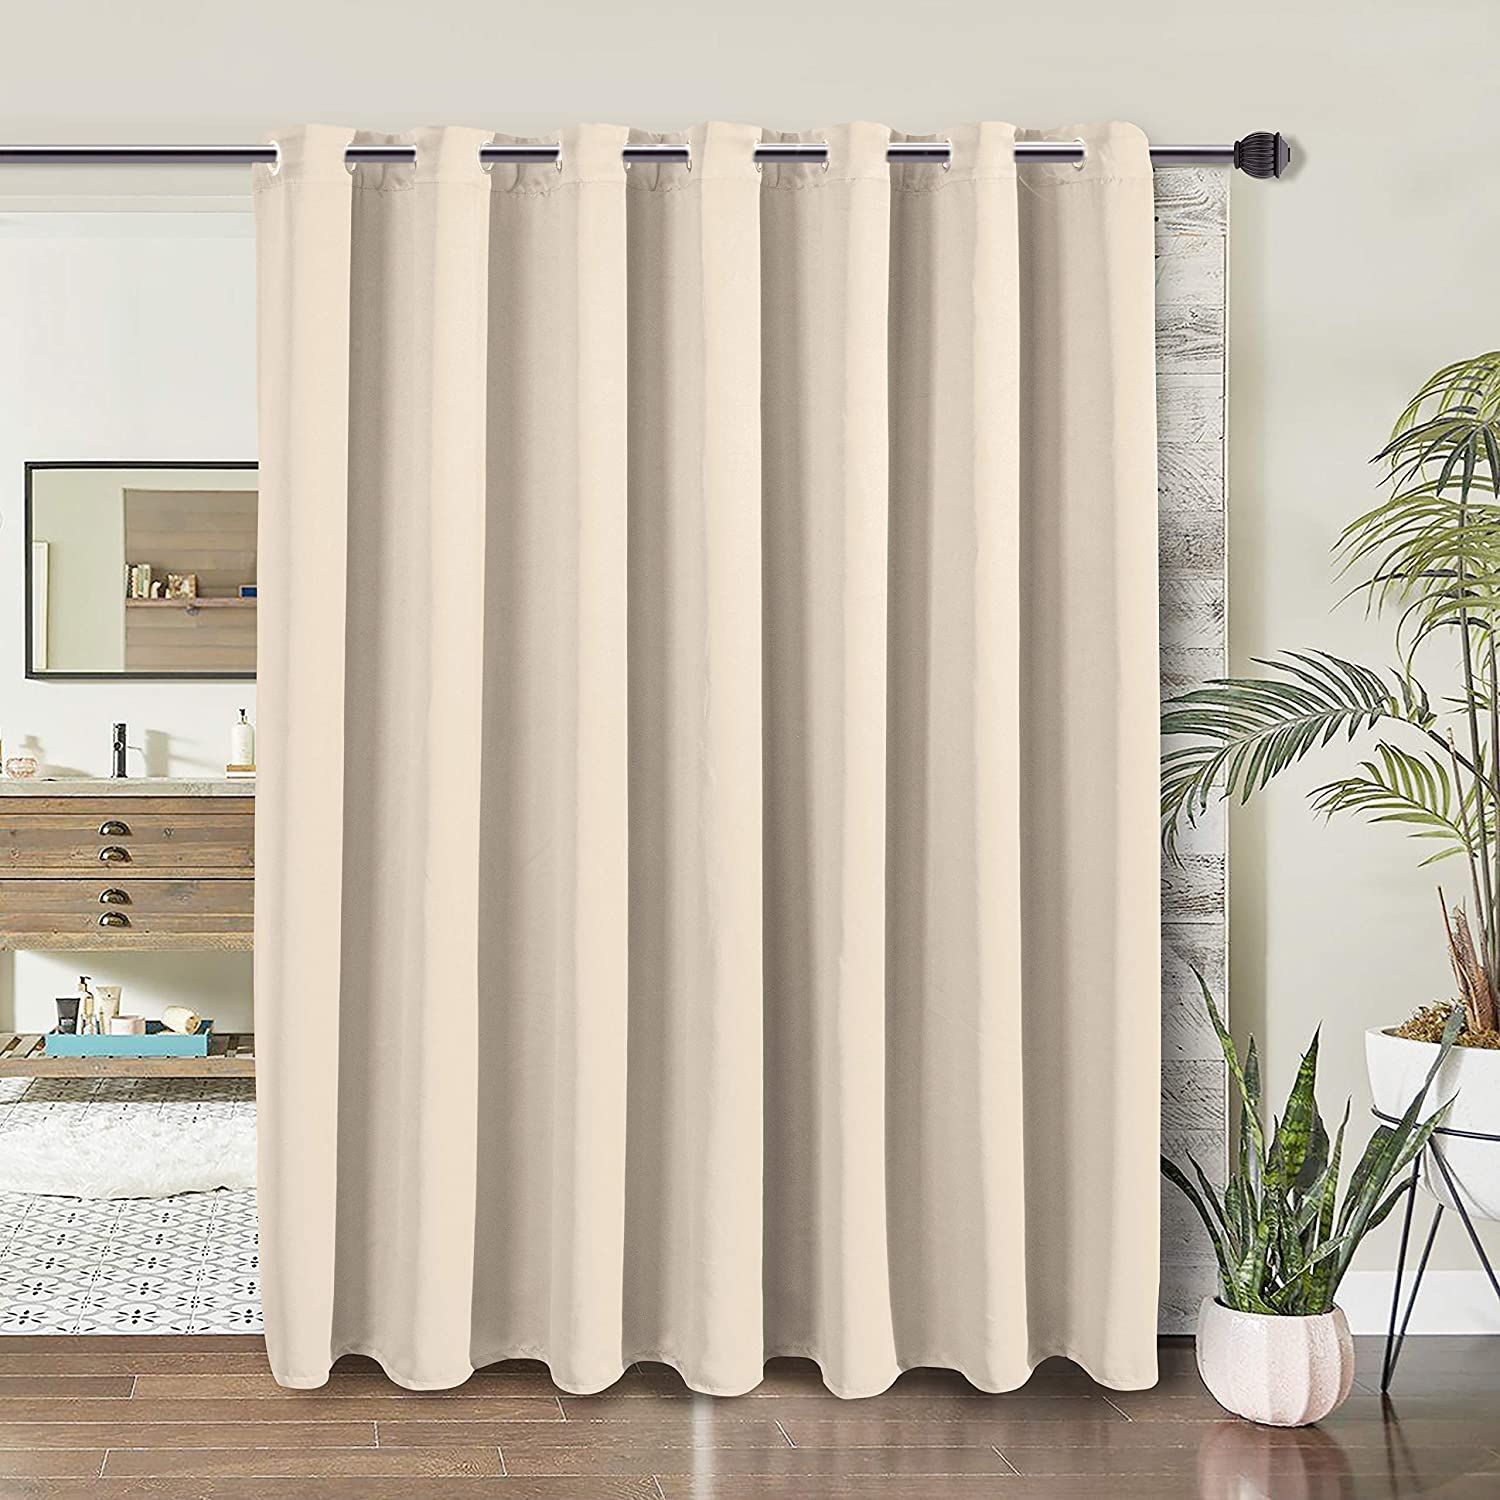 WONTEX Room Divider Curtain- Privacy Translated Blackout for Bedr Curtains Very popular